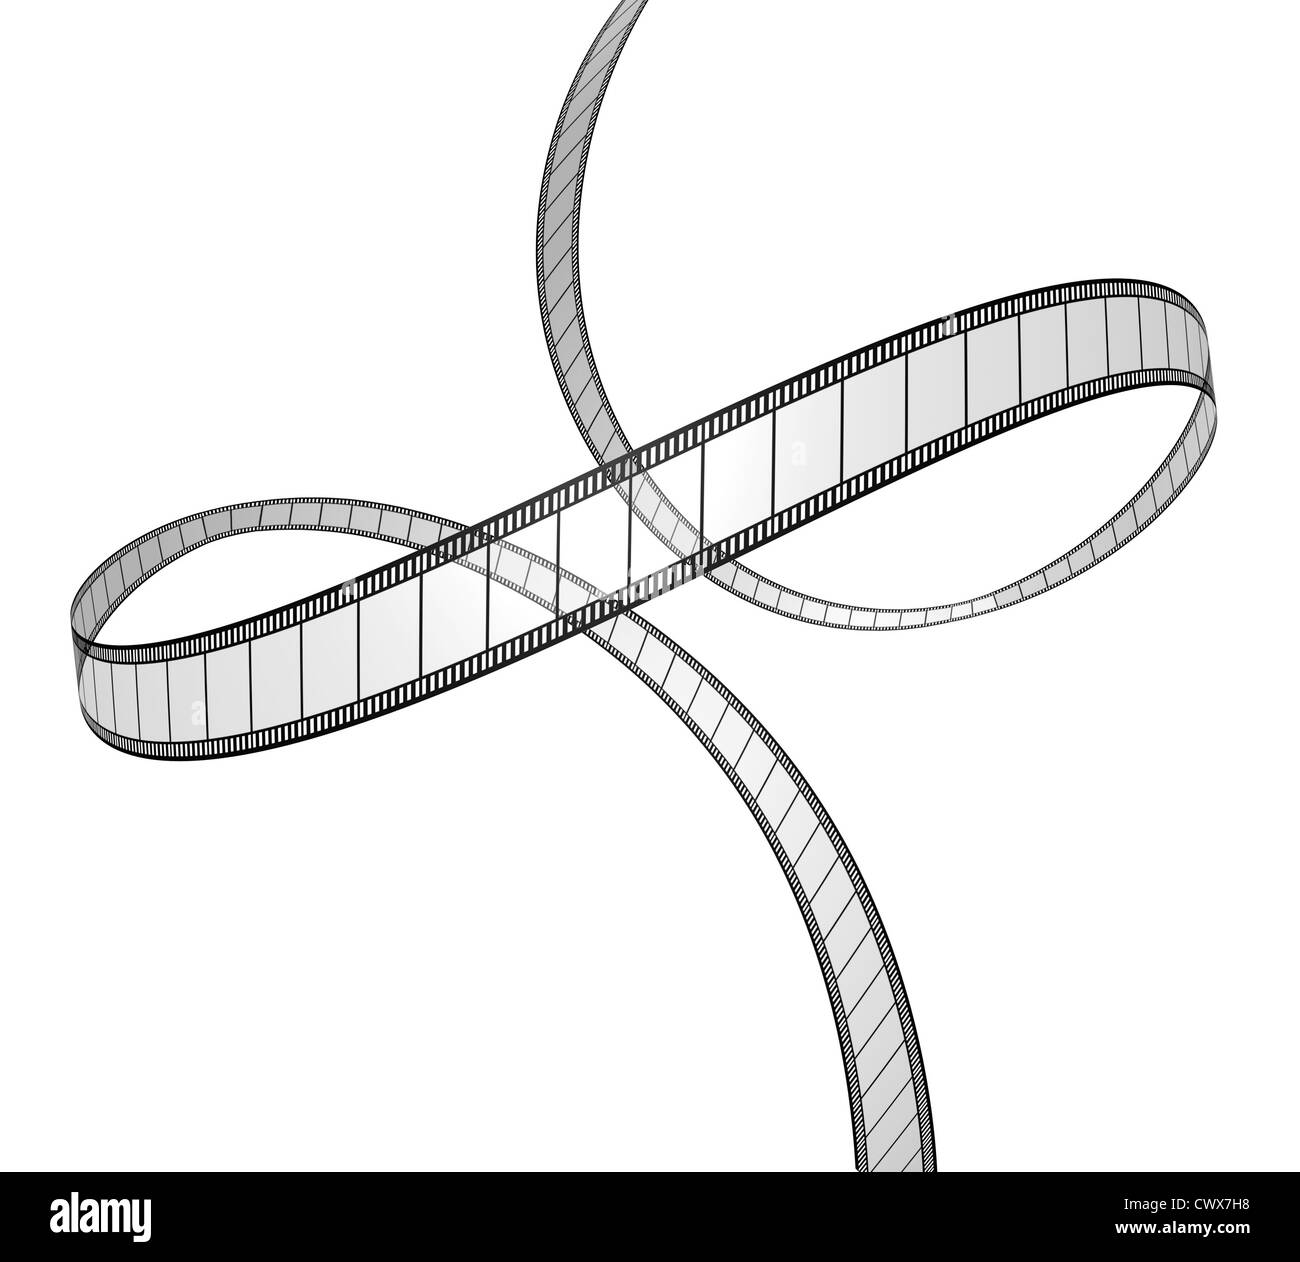 film in dynamic perspective movie frames in a 3d twisted shape on white background for cinema - Dynamic Frames